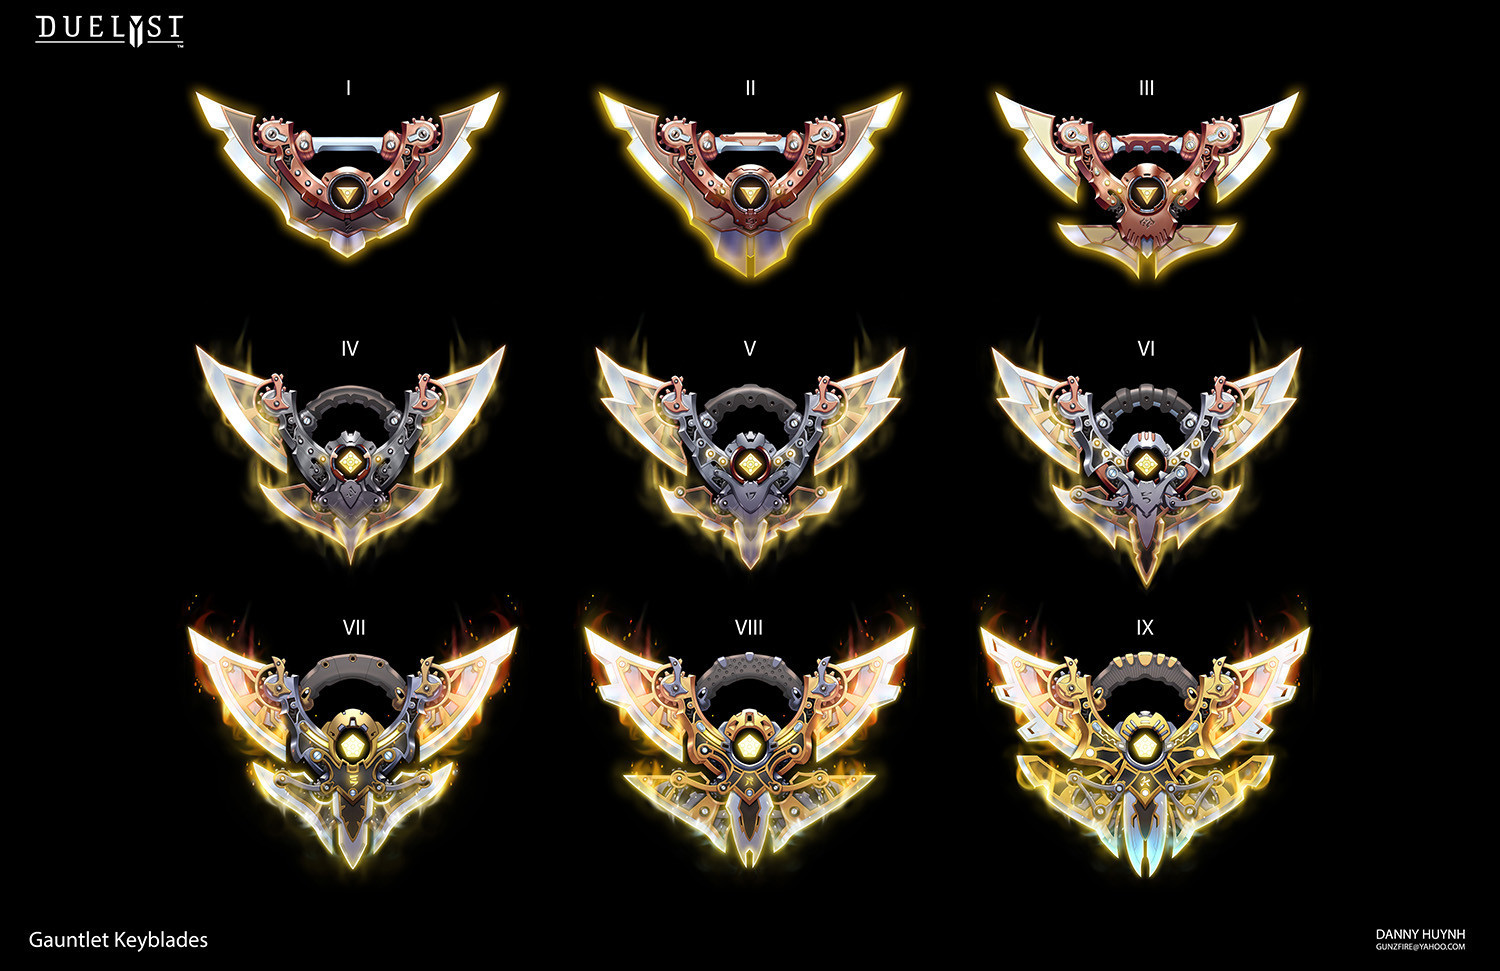 Keyblades represent 9 rank levels a player can achieve in Gauntlet.